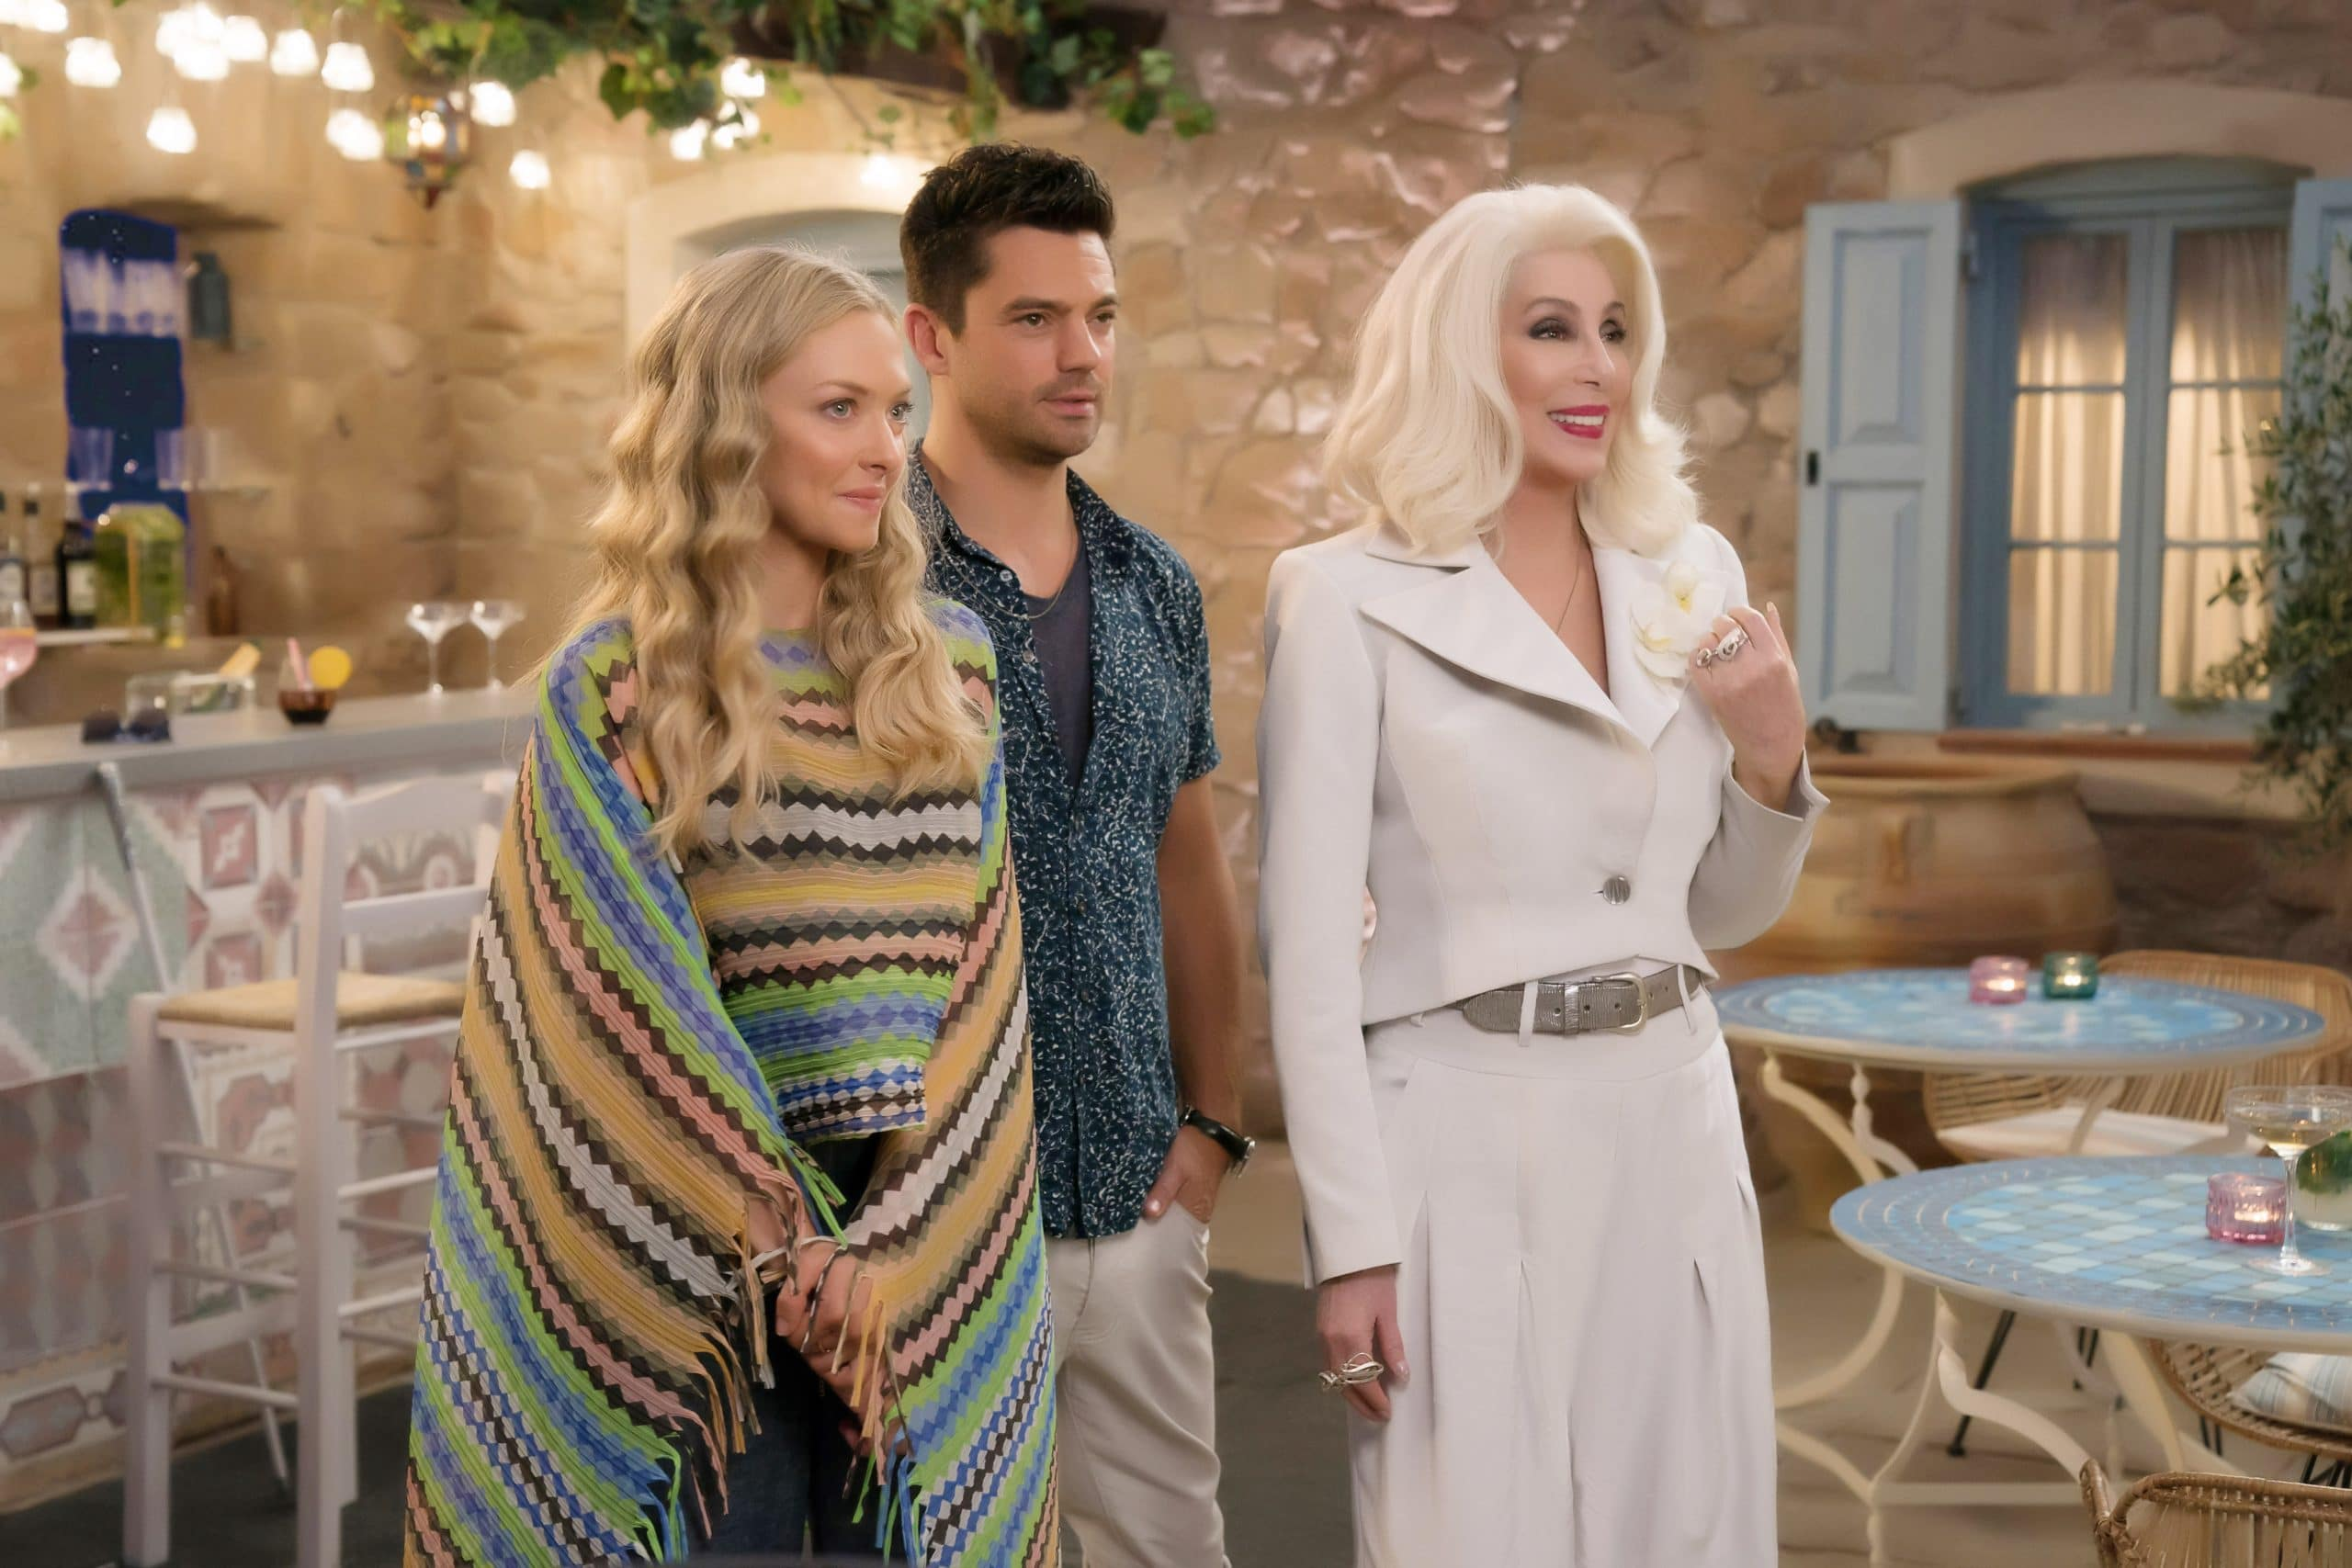 Is There Going To Be A 'Mamma Mia 3'? Survey Says...